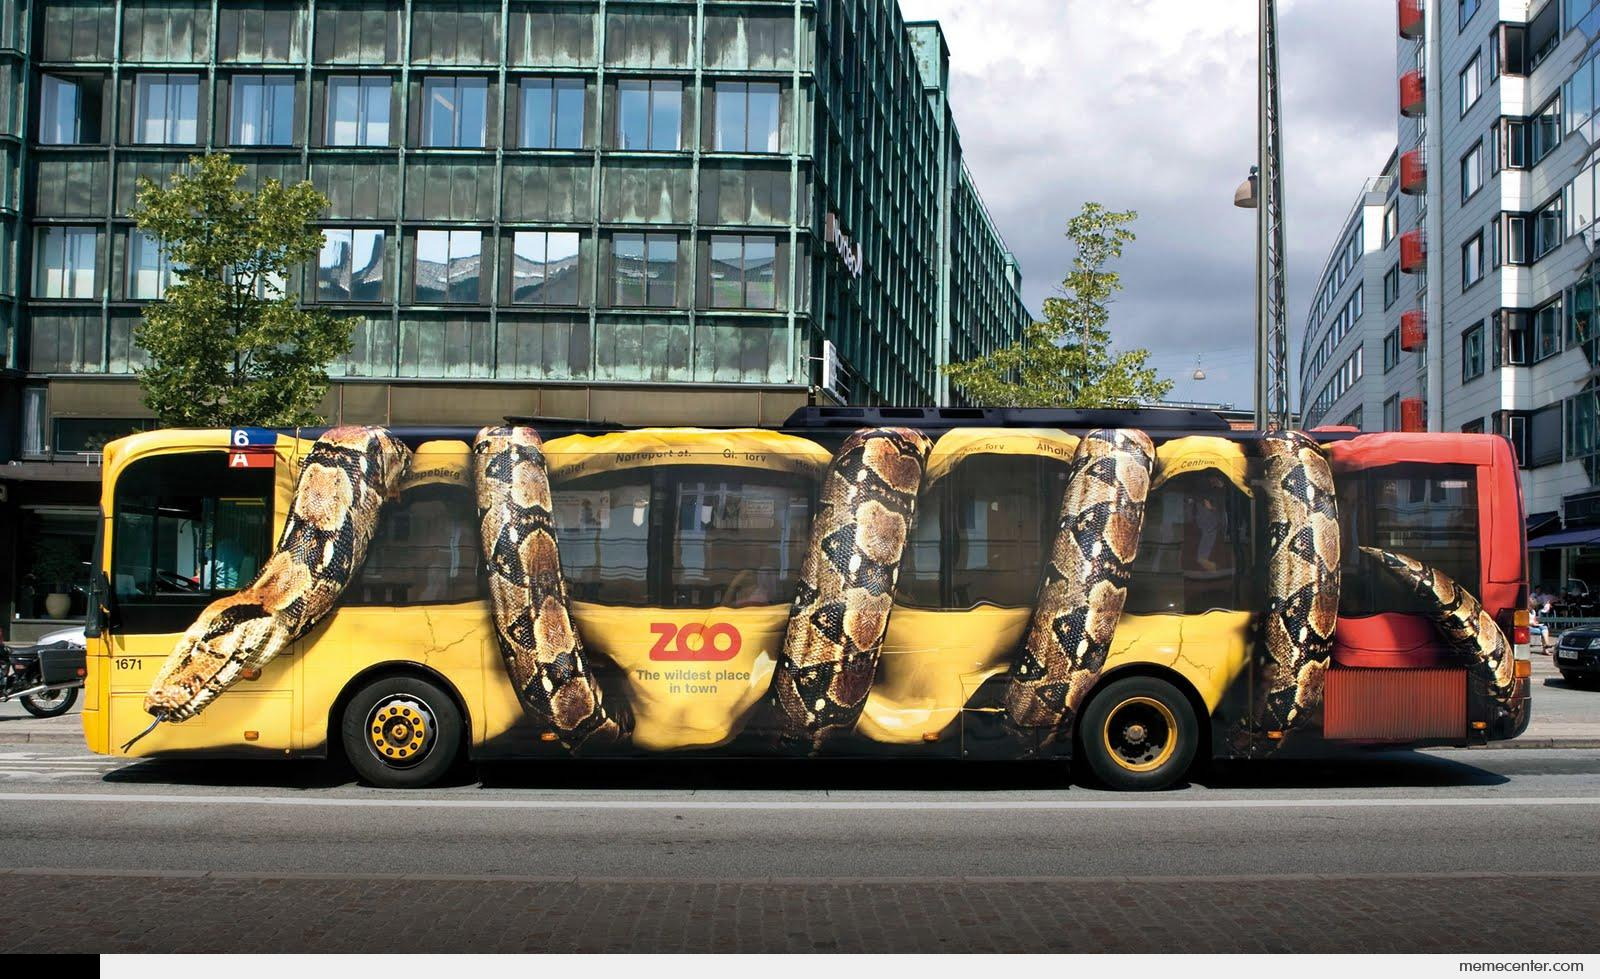 Cool Snake Bus Advertisement